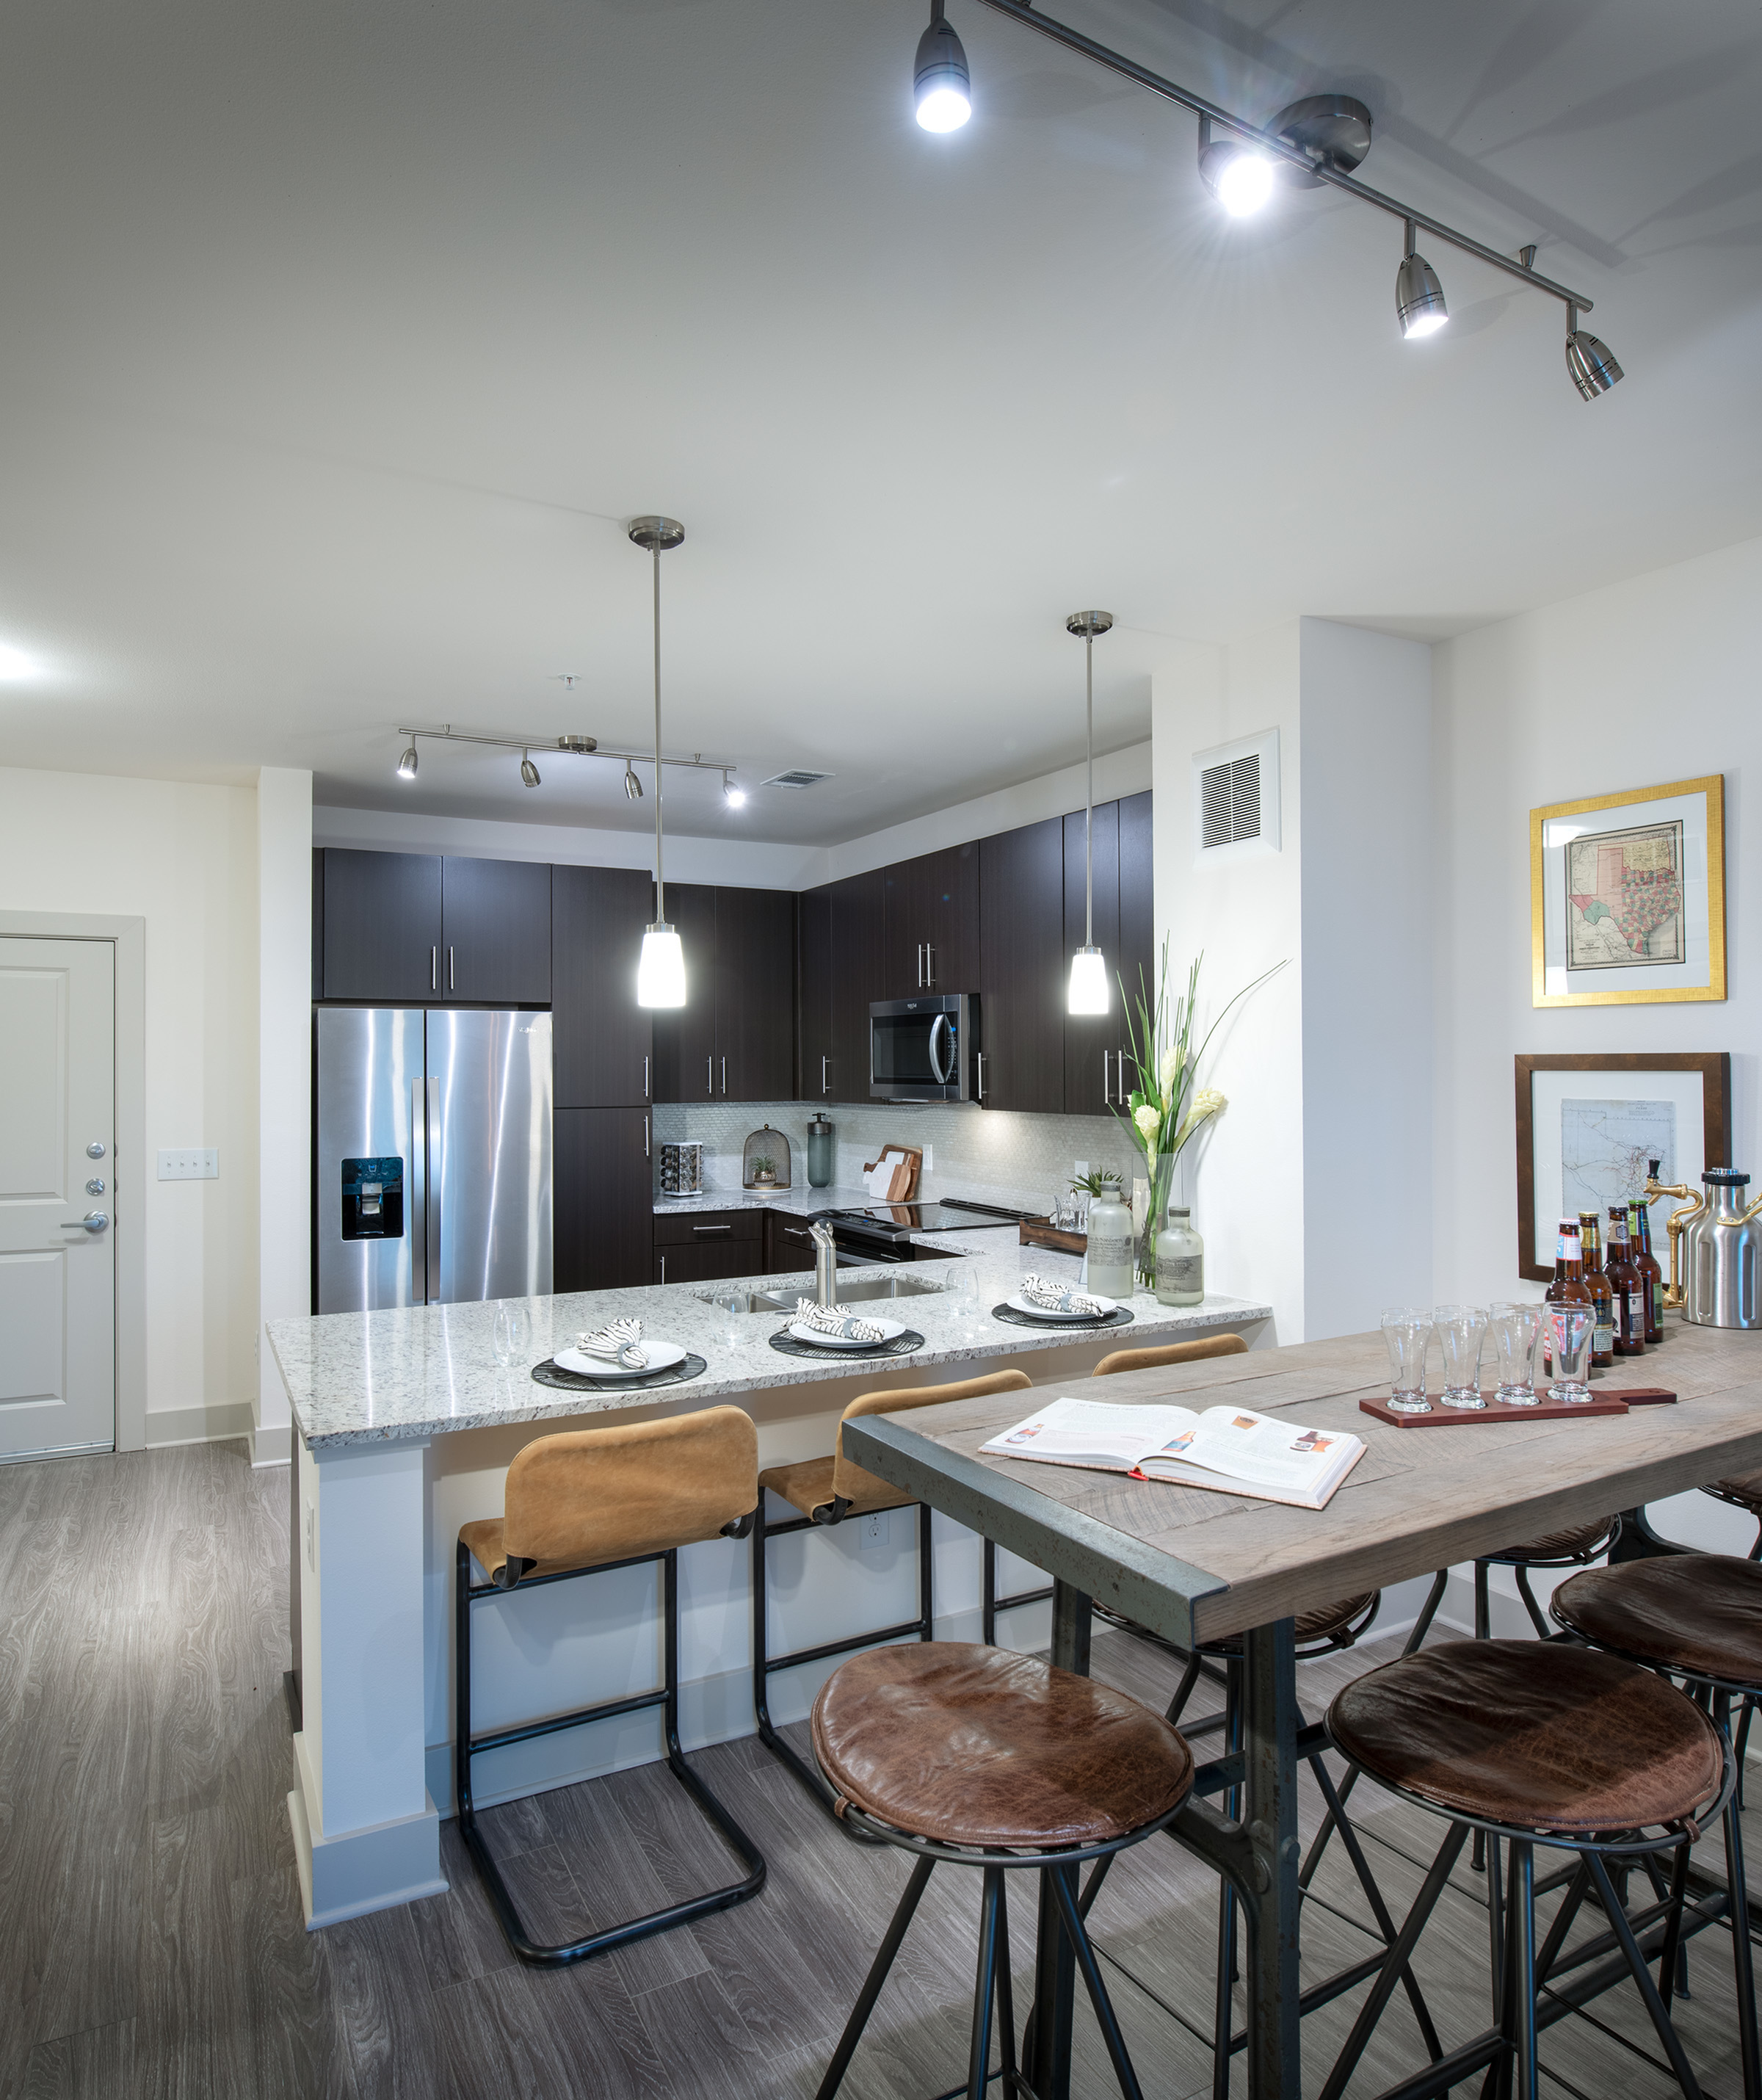 Image of Gourmet chef kitchens with stainless steel appliances for Hanover Dr. Phillips